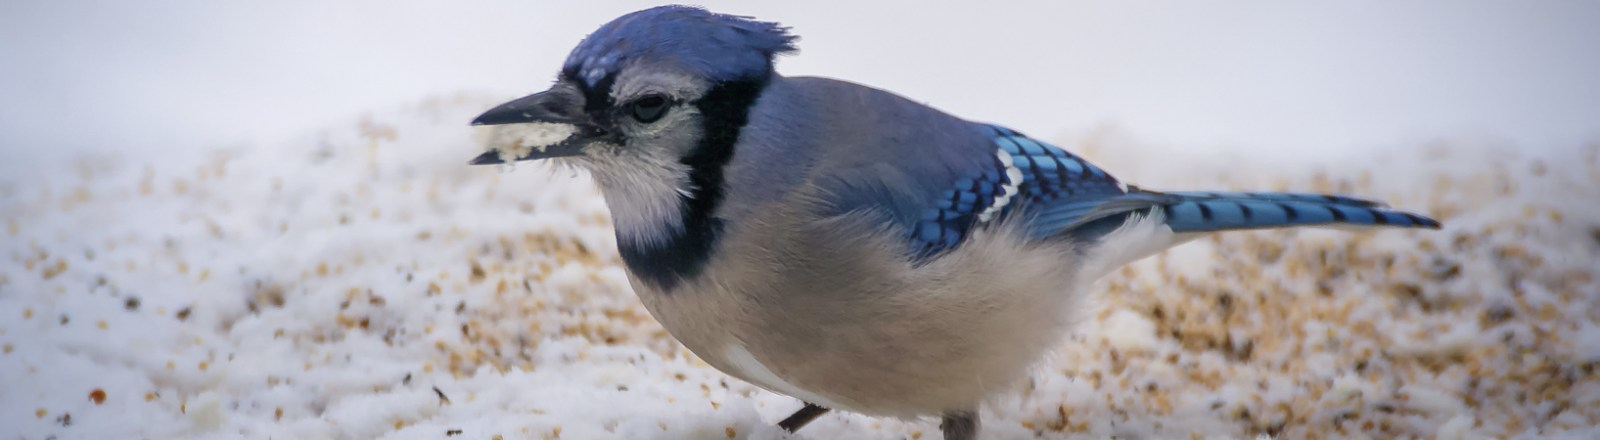 Wordless Wednesday: A Band of Blue Jays on a Bench, in the Winter, in New York